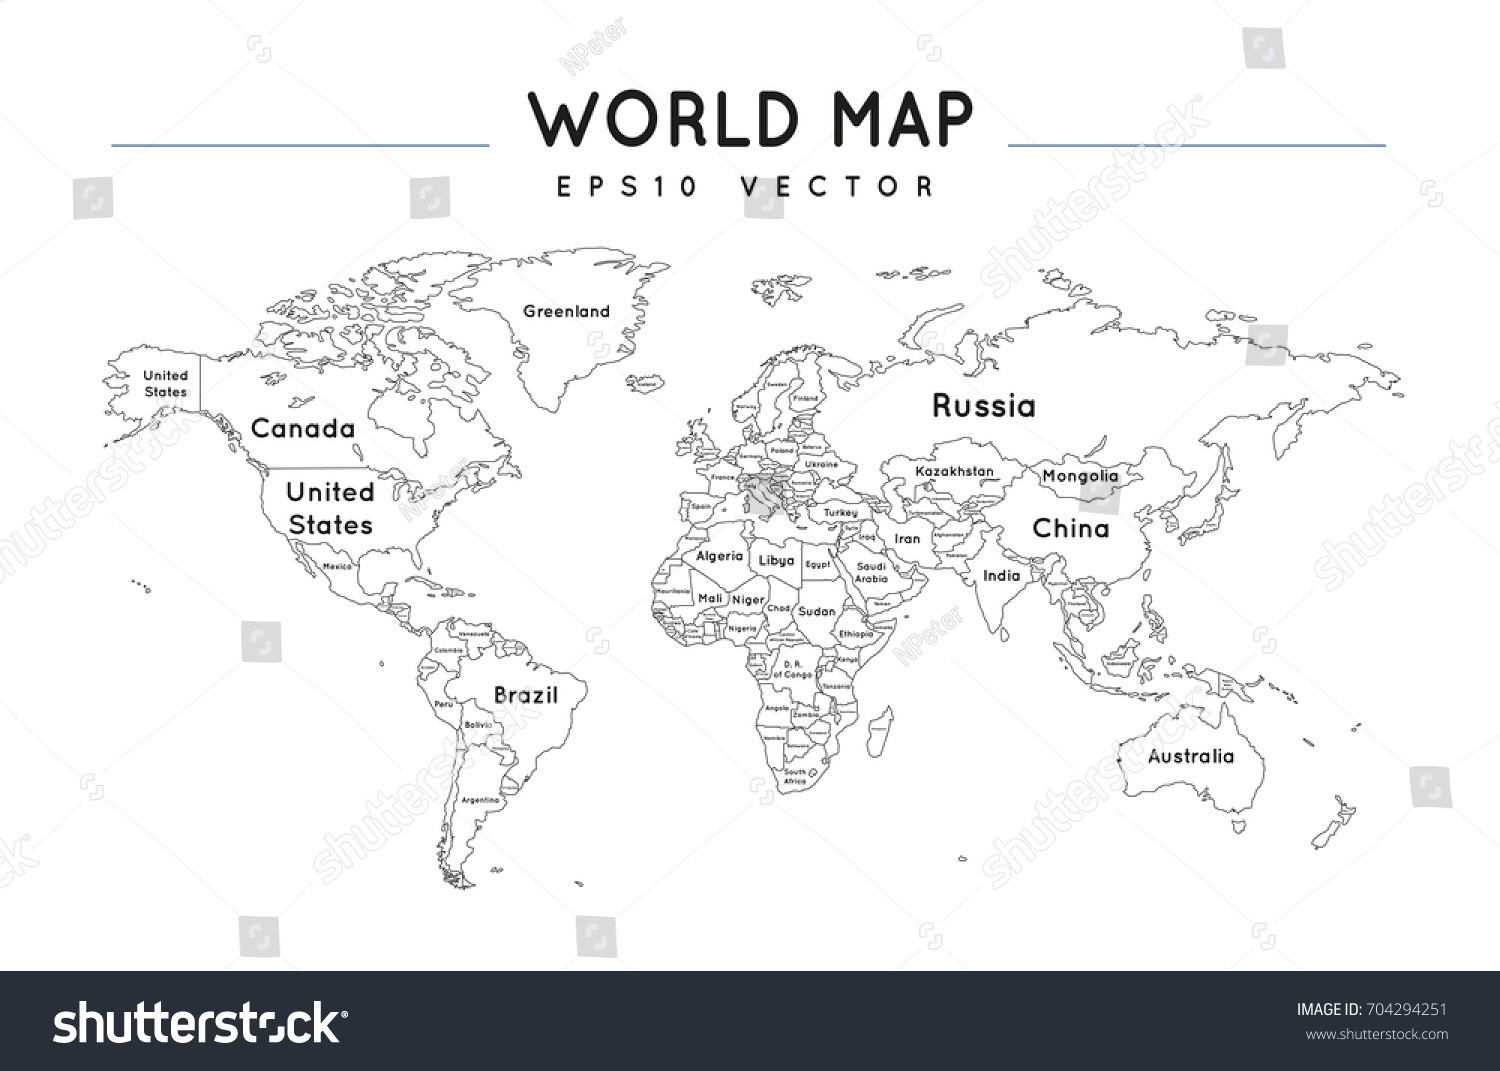 Political world map name borders countries stock vector 2018 political world map with the name and borders of the countries gumiabroncs Image collections